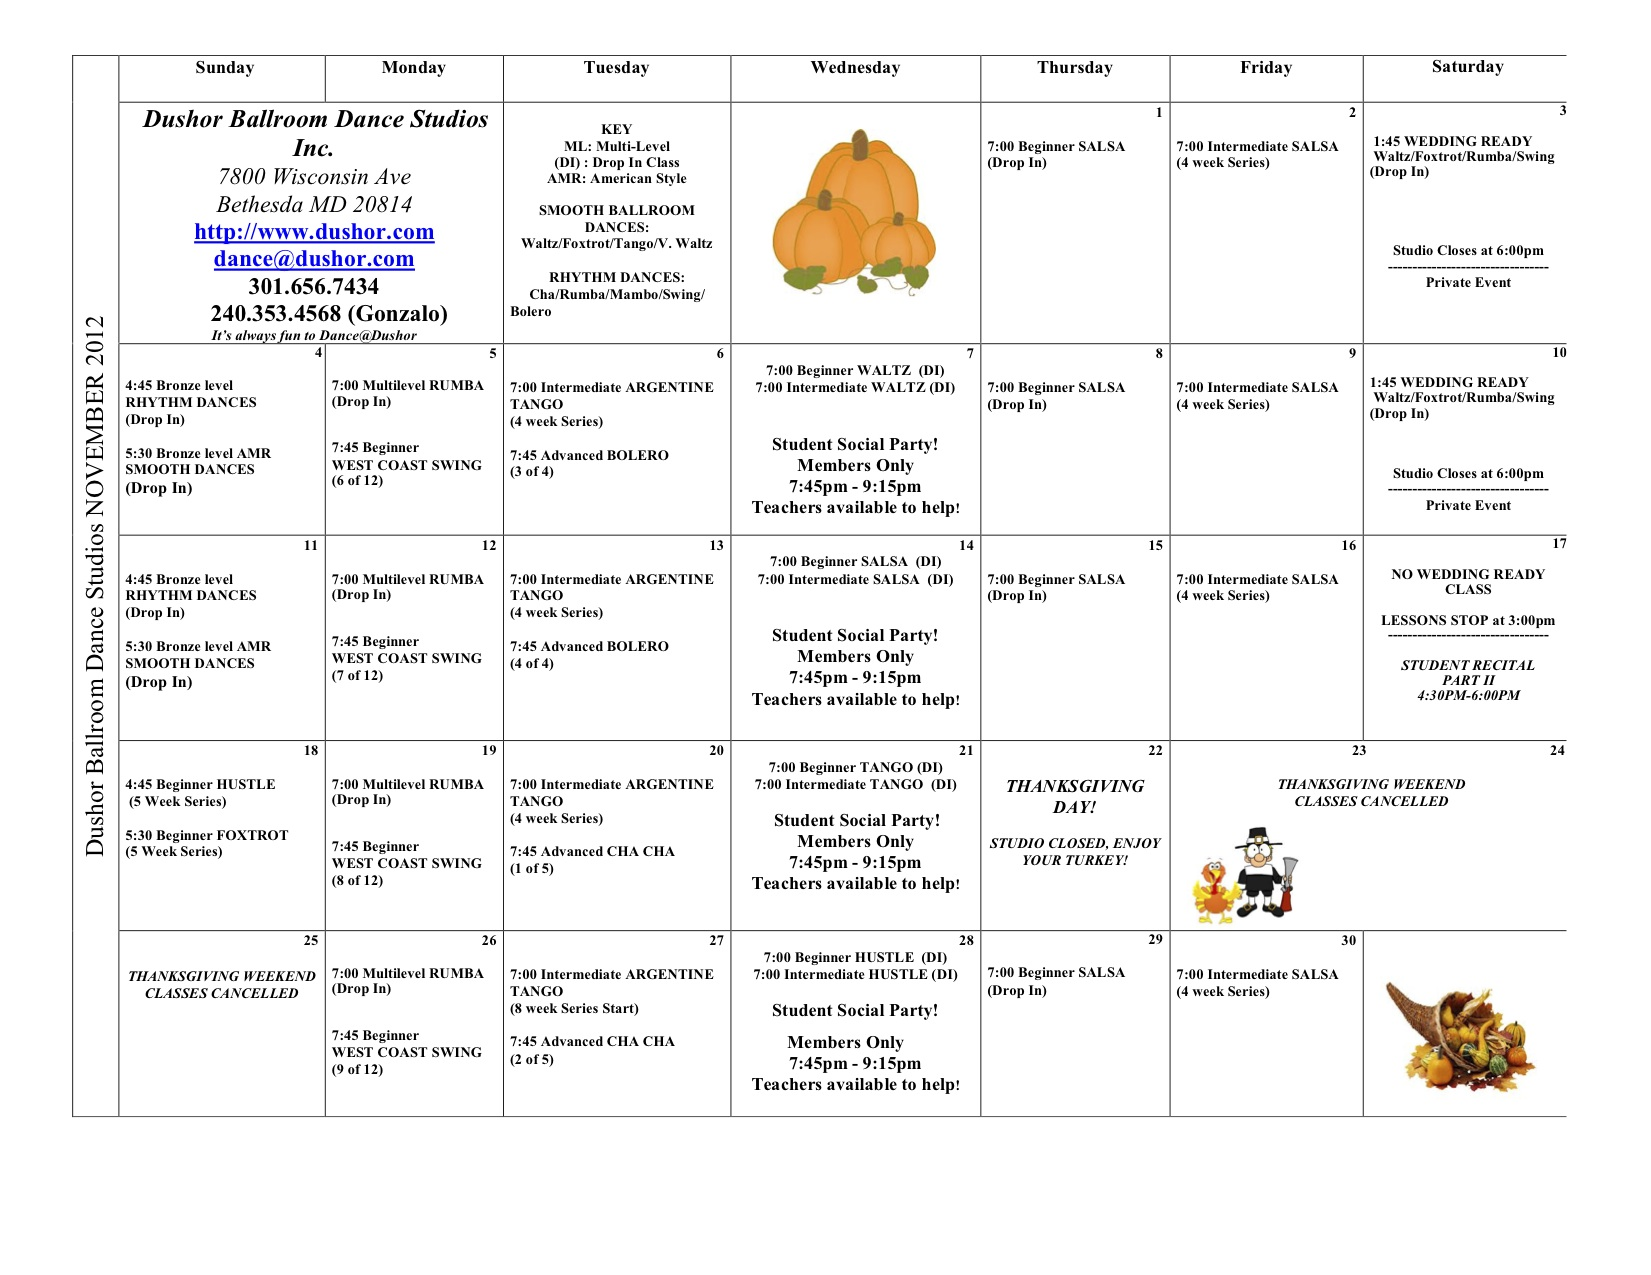 NOVEMBER Calendar, Please Email                       Dance@dushor.com if you cannot view